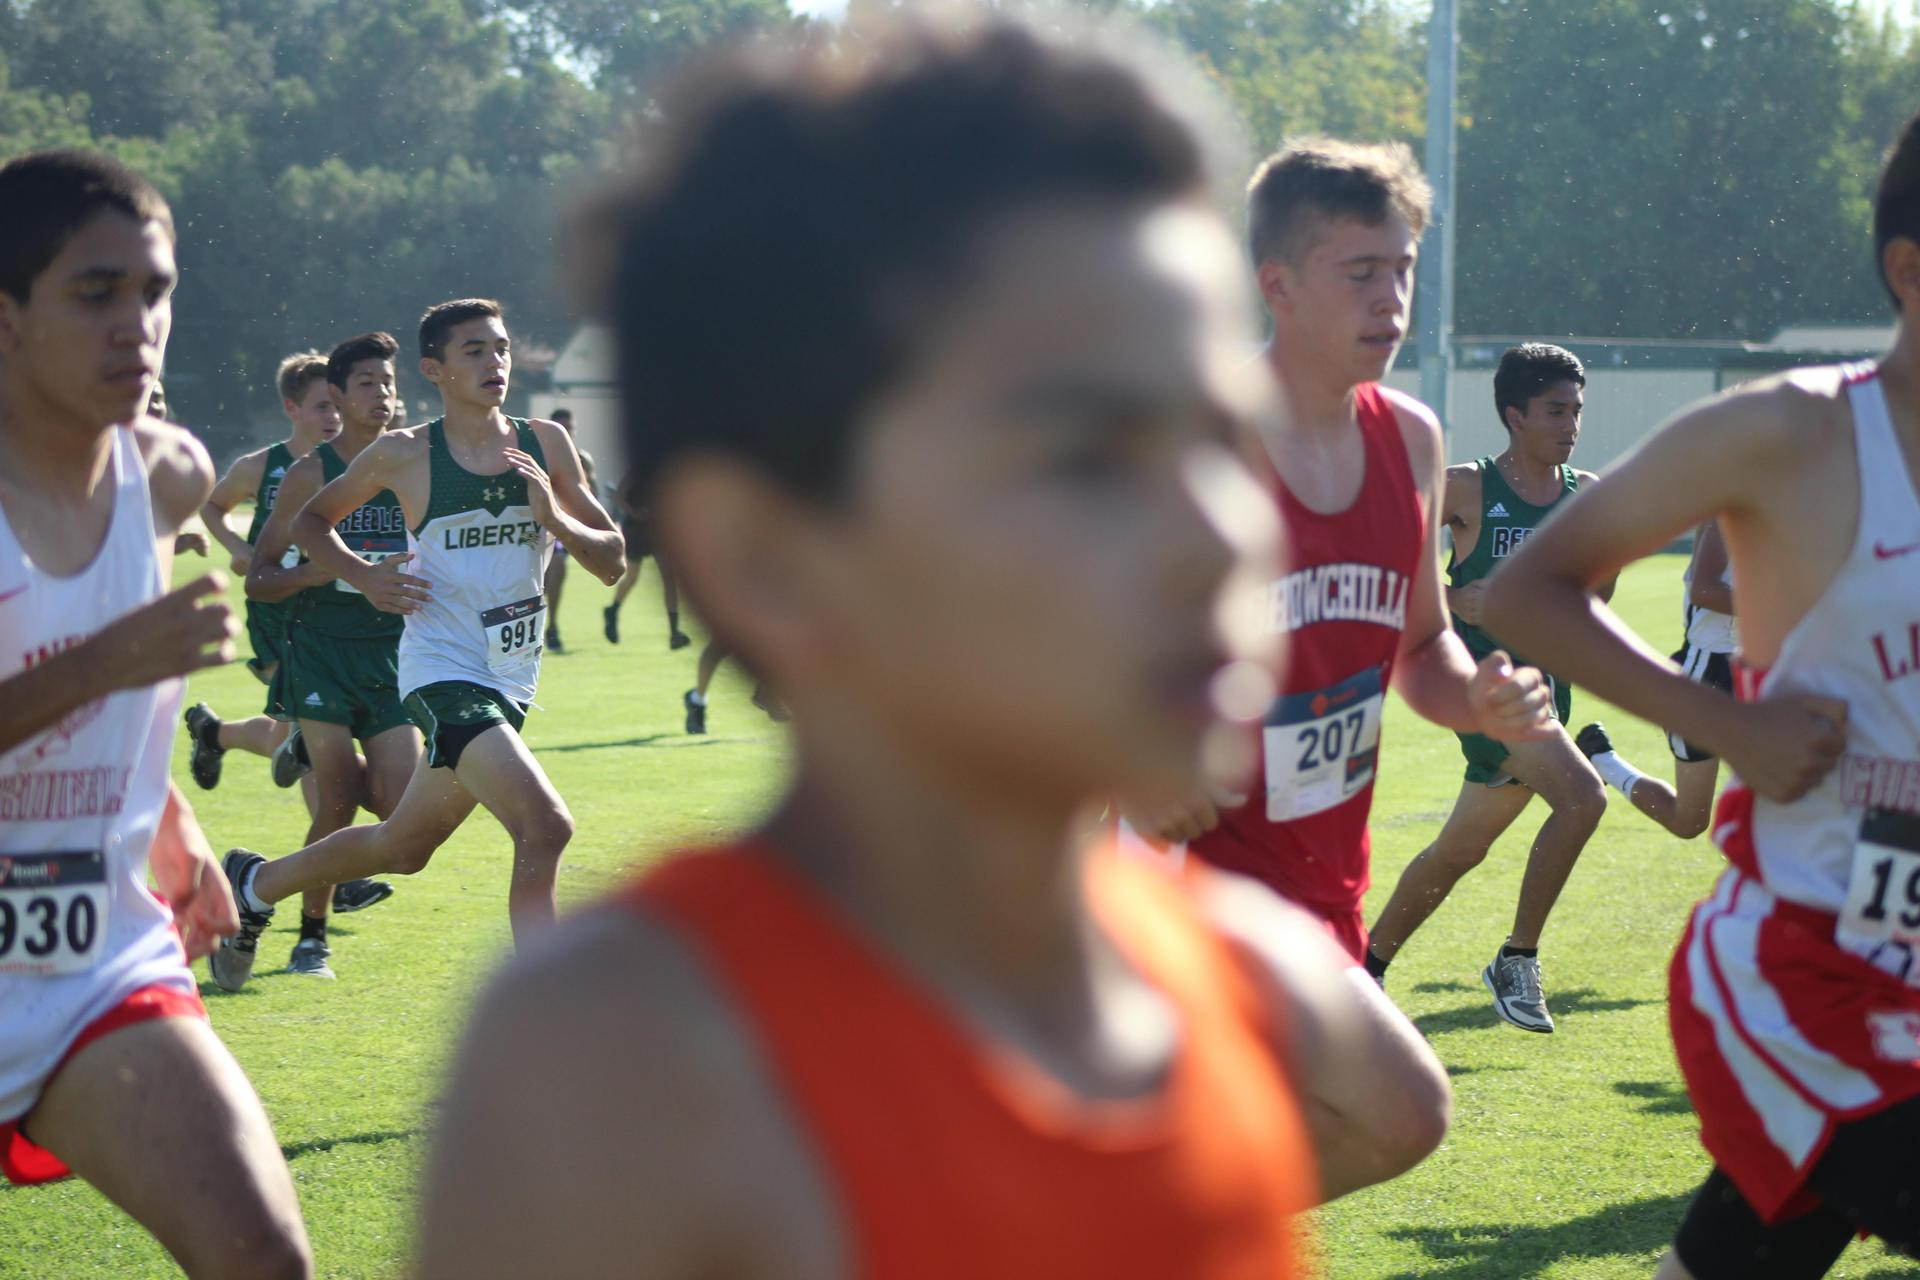 Cross country athletes running at Kingsburg